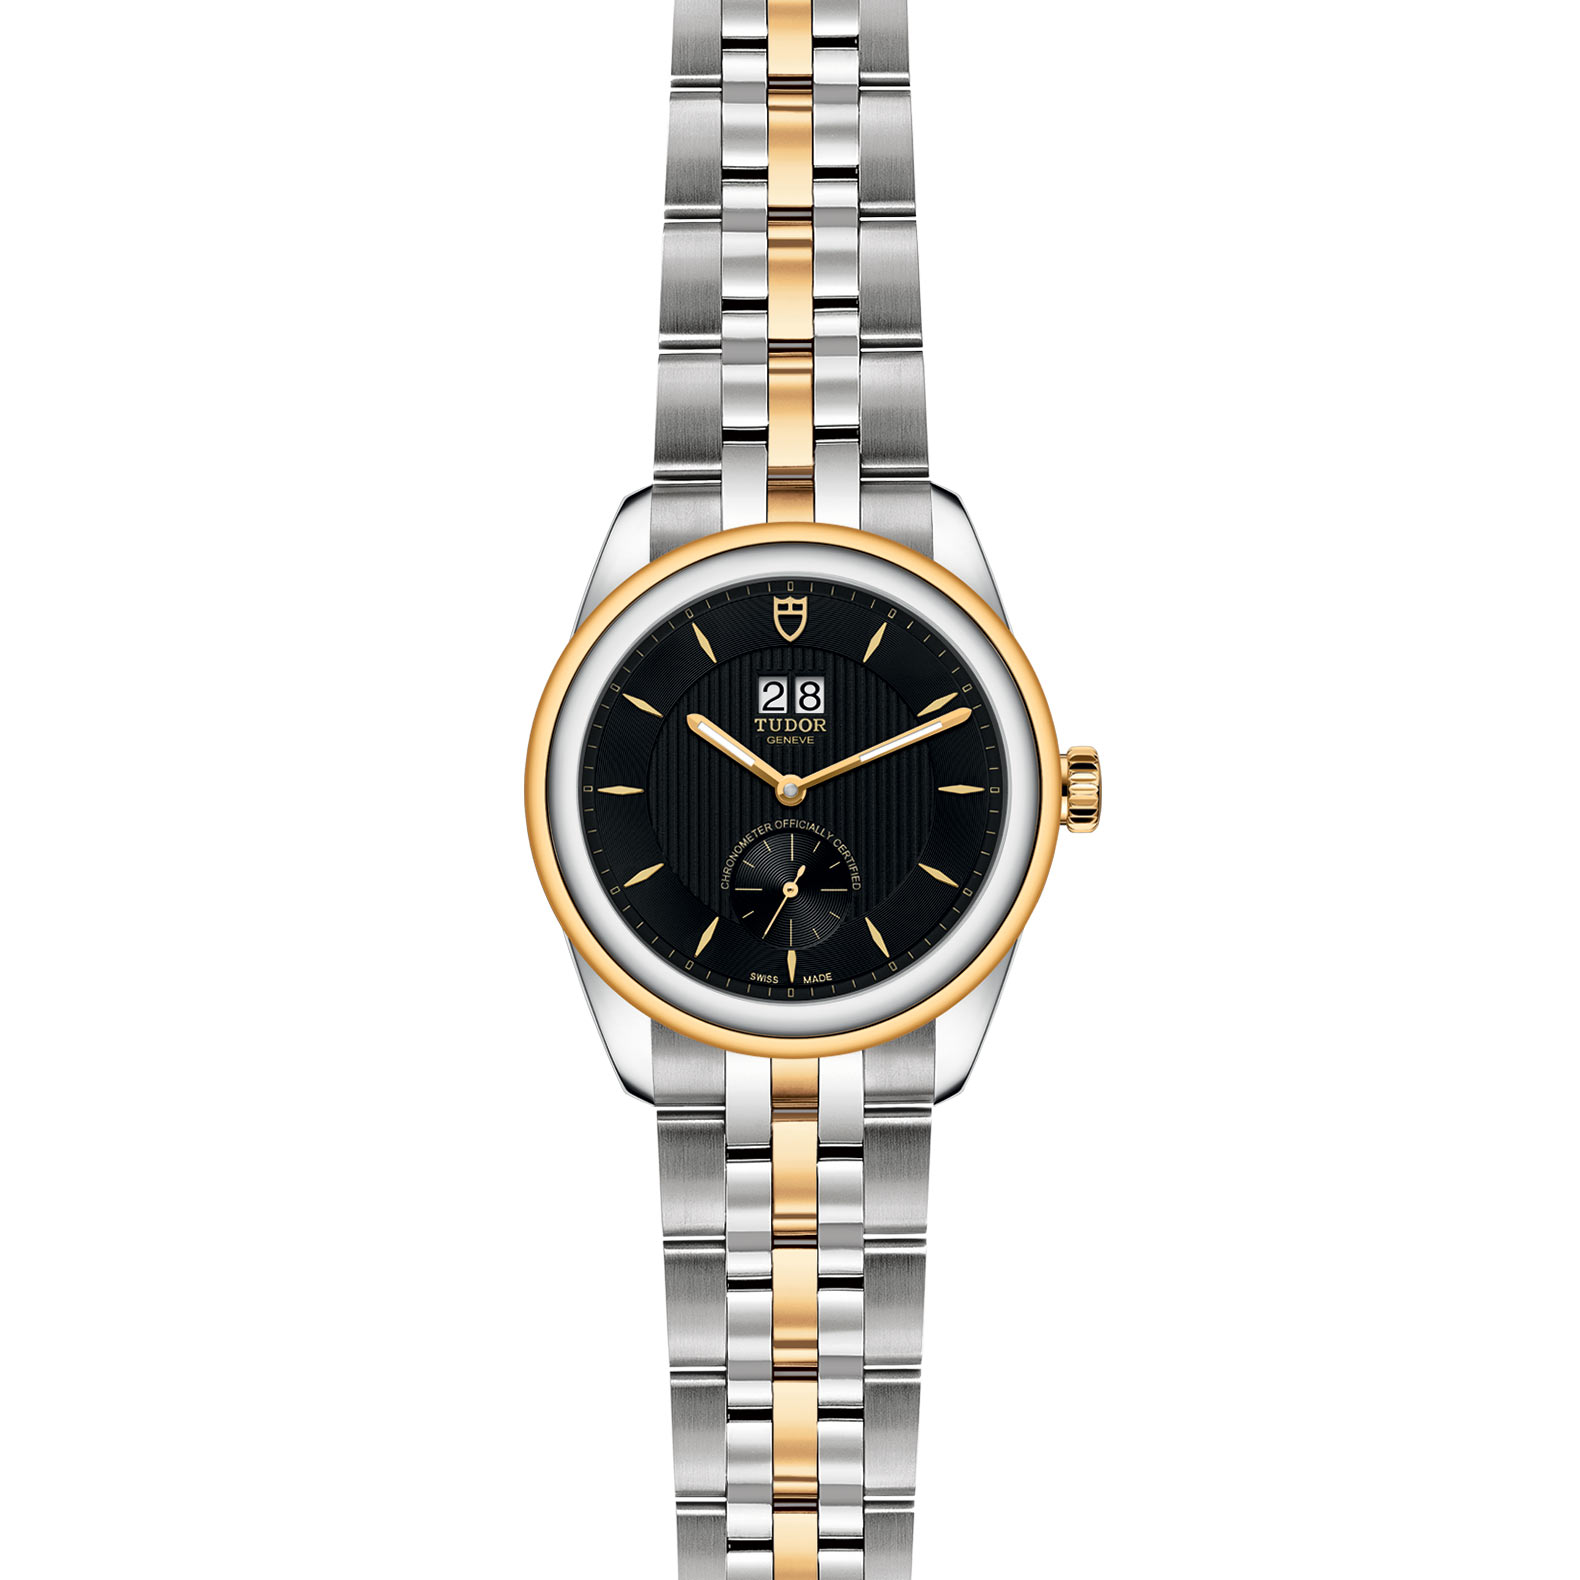 TUDOR Glamour Double Date M57103 0002 Frontfacing